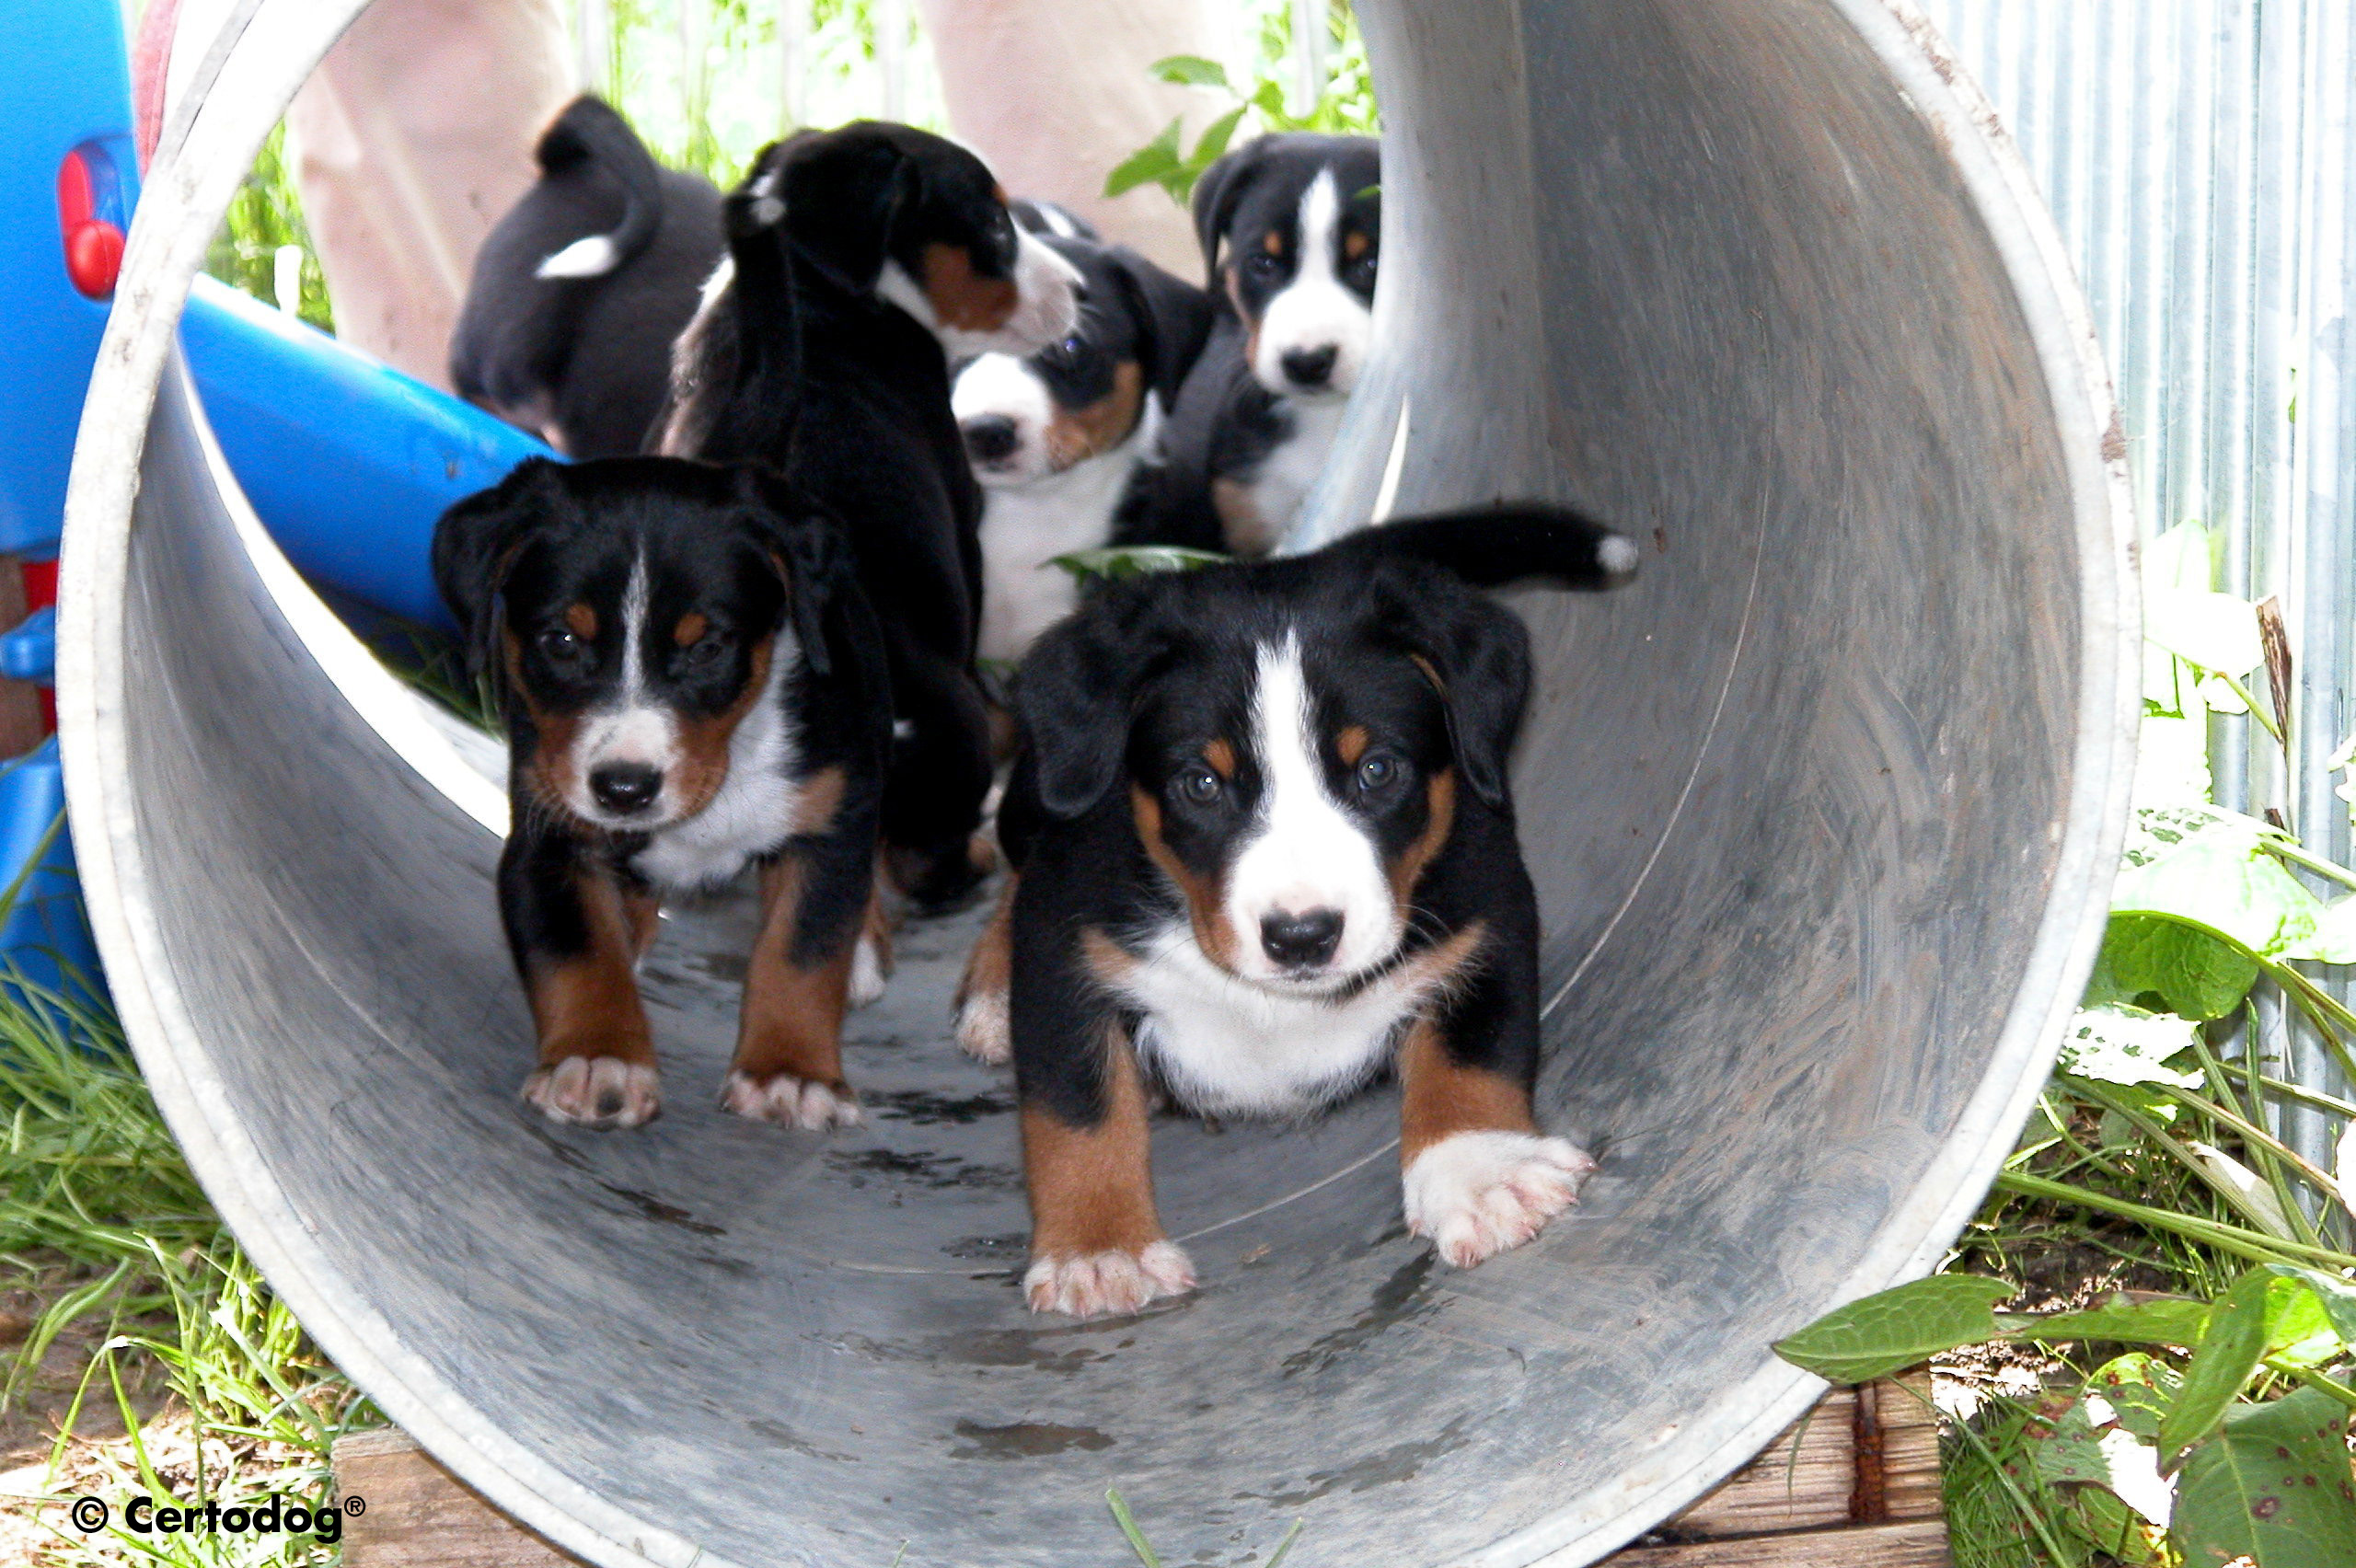 Appenzeller Sennenhund puppies in the pipe wallpaper